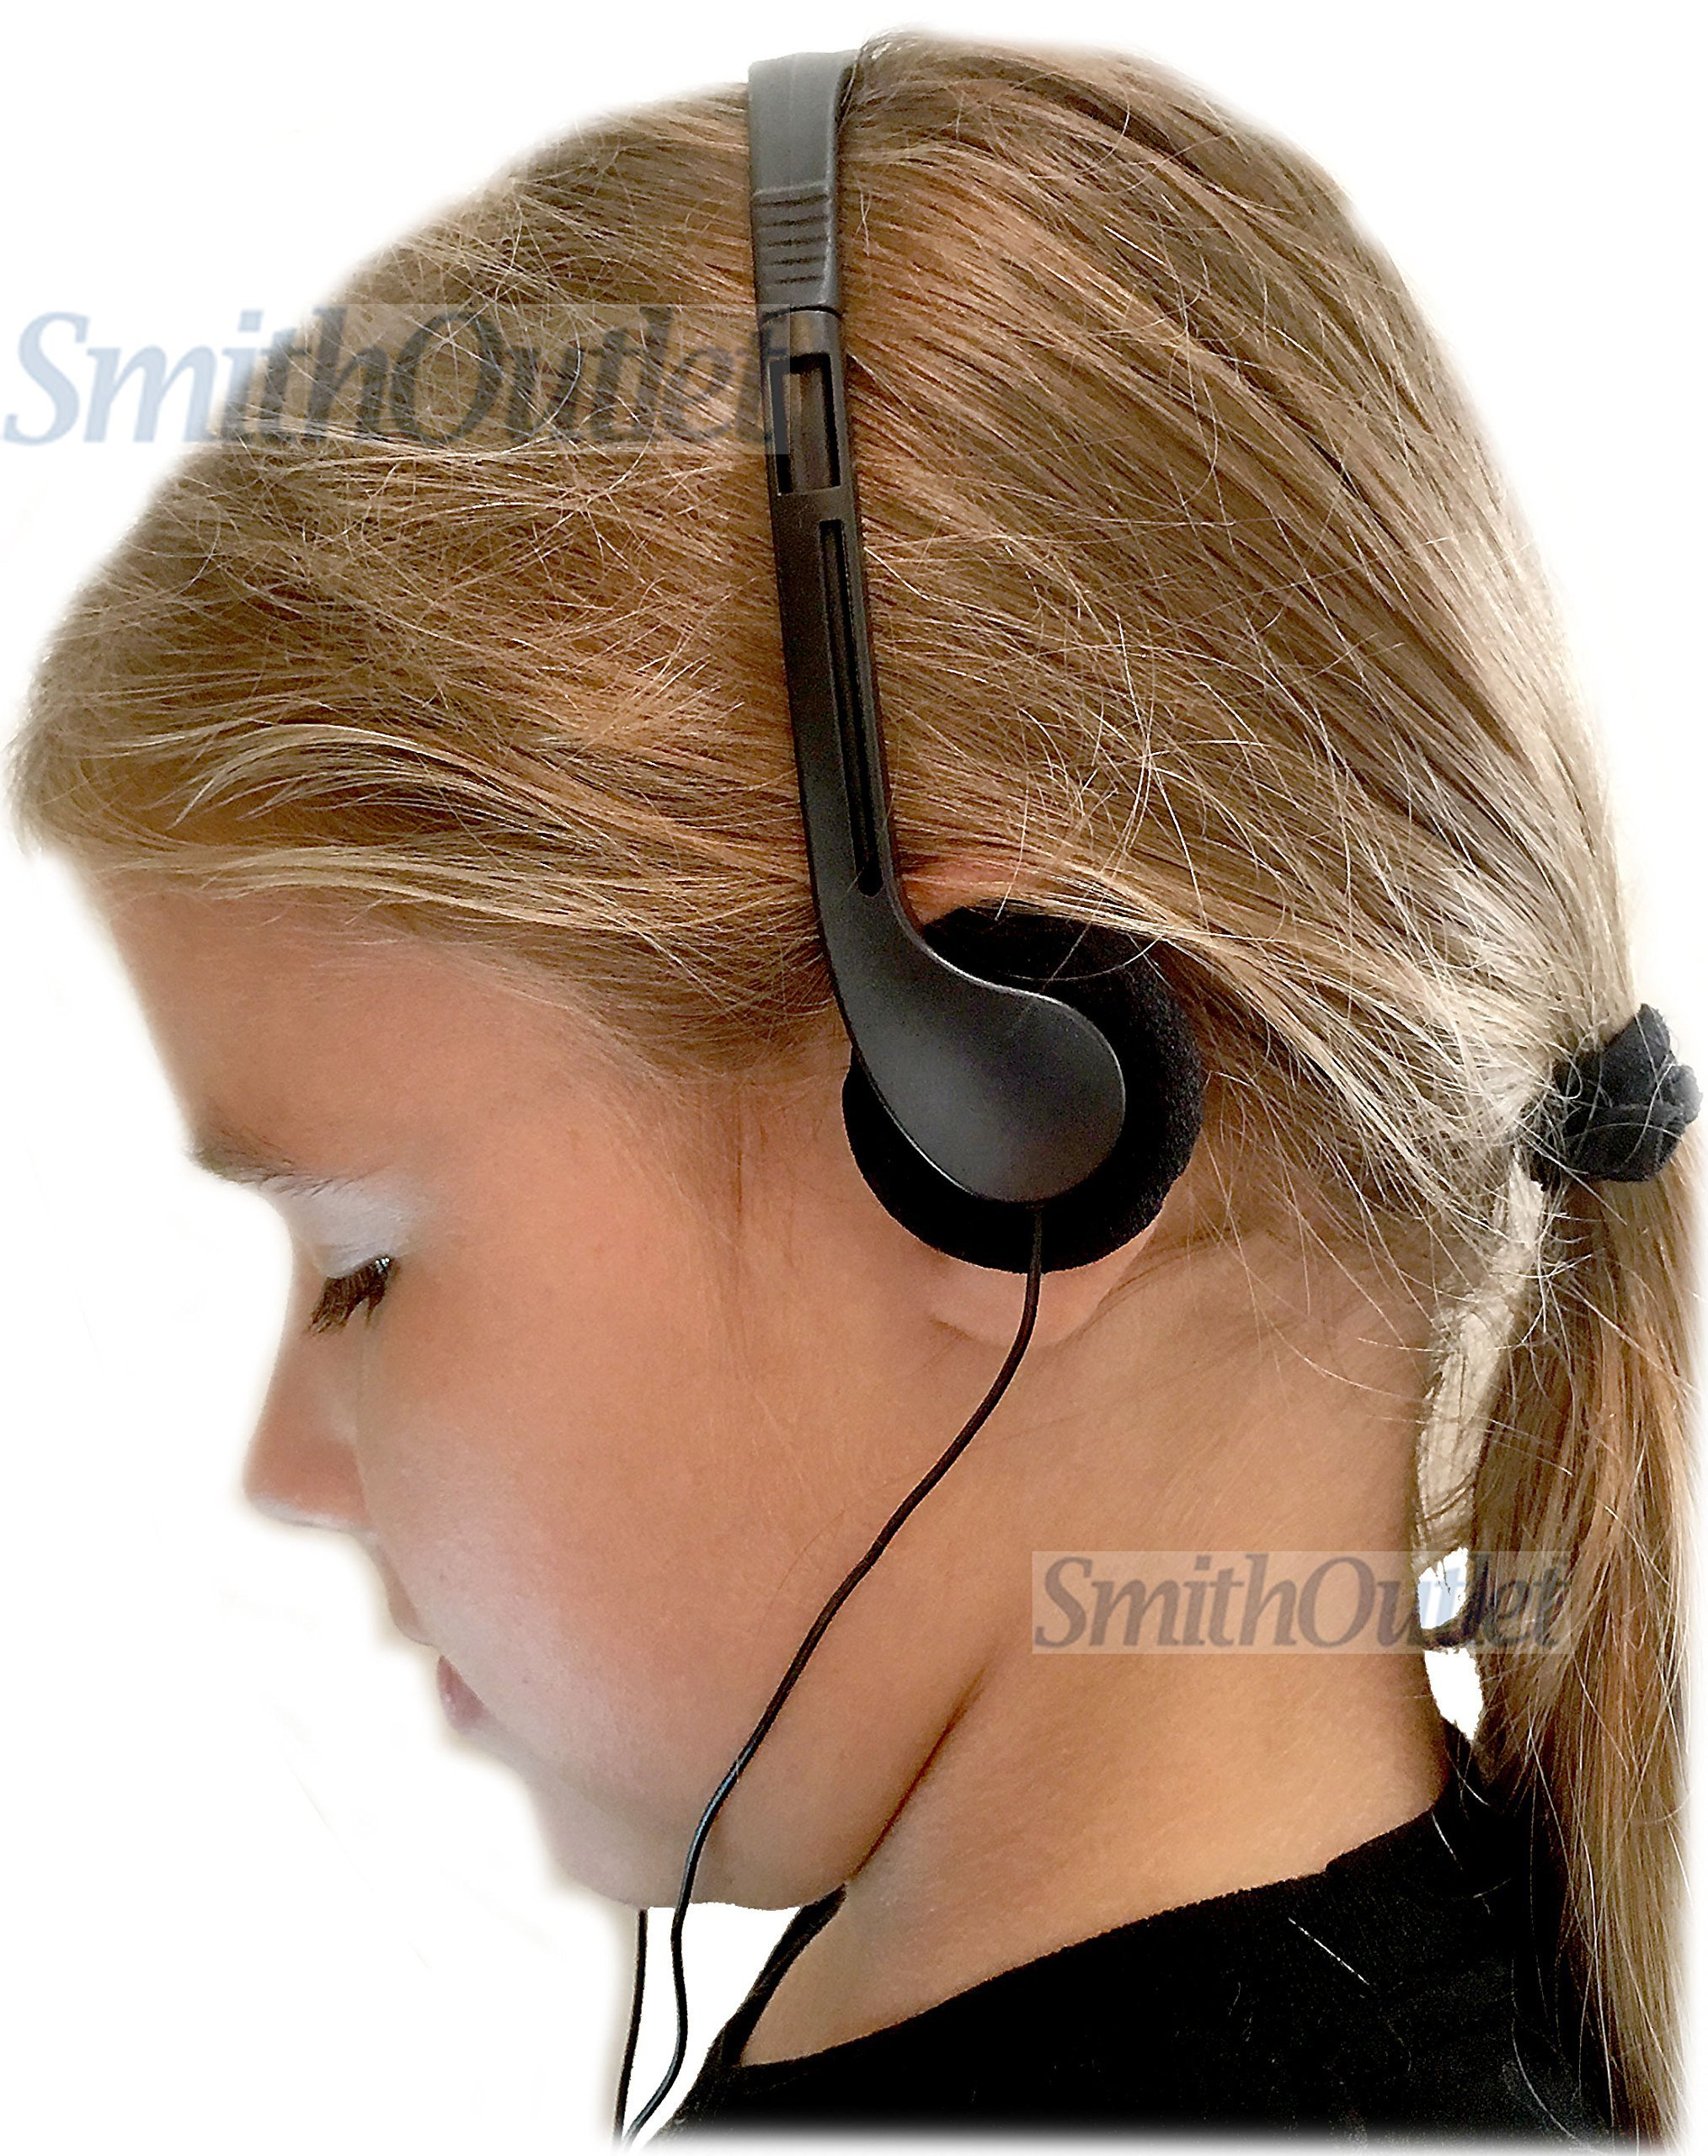 SmithOutlet 100 Pack Low Cost Classroom/Library Headphones by SmithOutlet (Image #3)